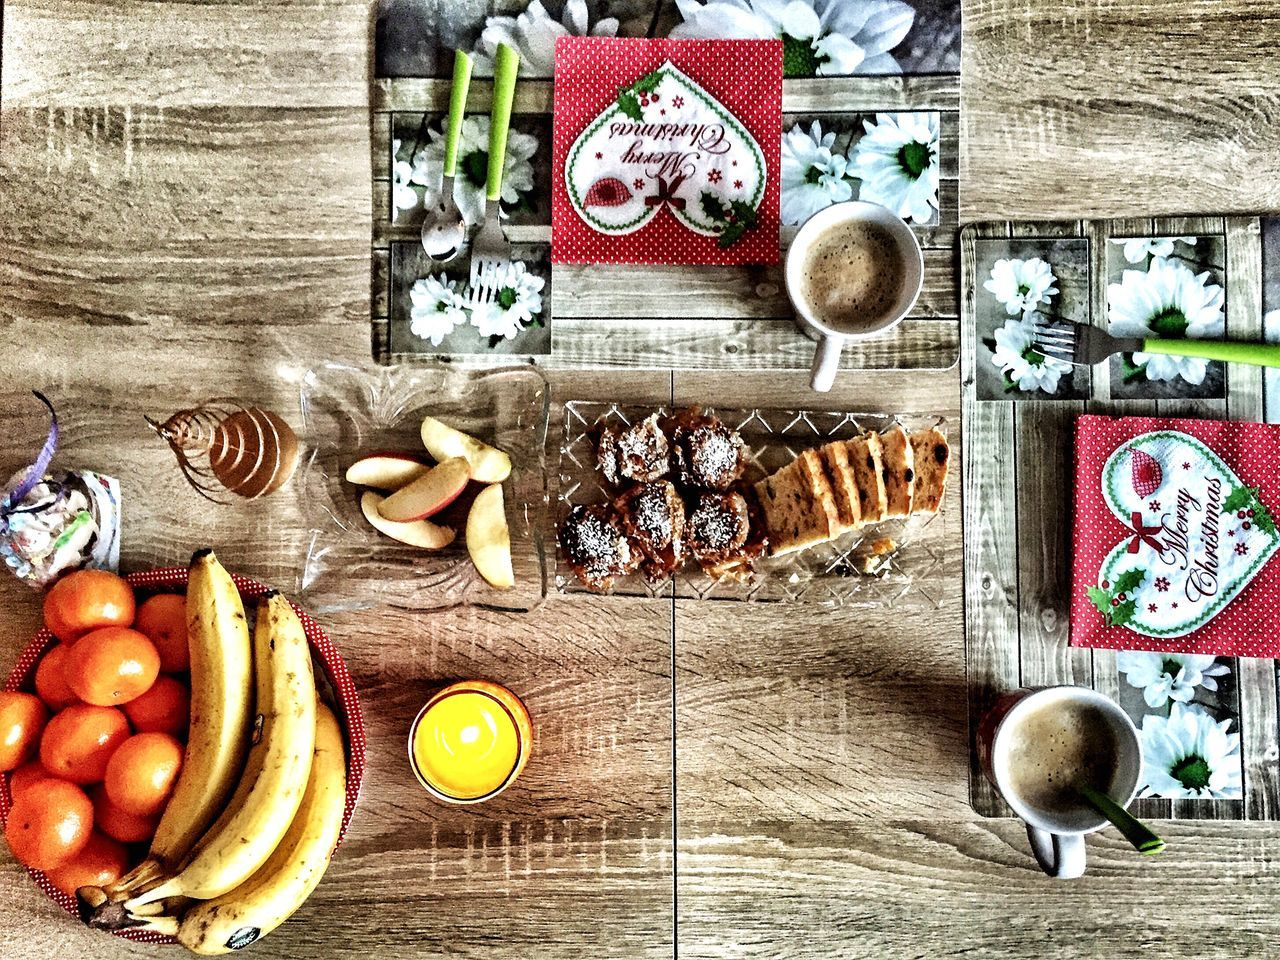 Food Breakfast Breakfast Time Christmas Decorations Christmas Stollen Christmas Table Breakfast For Two